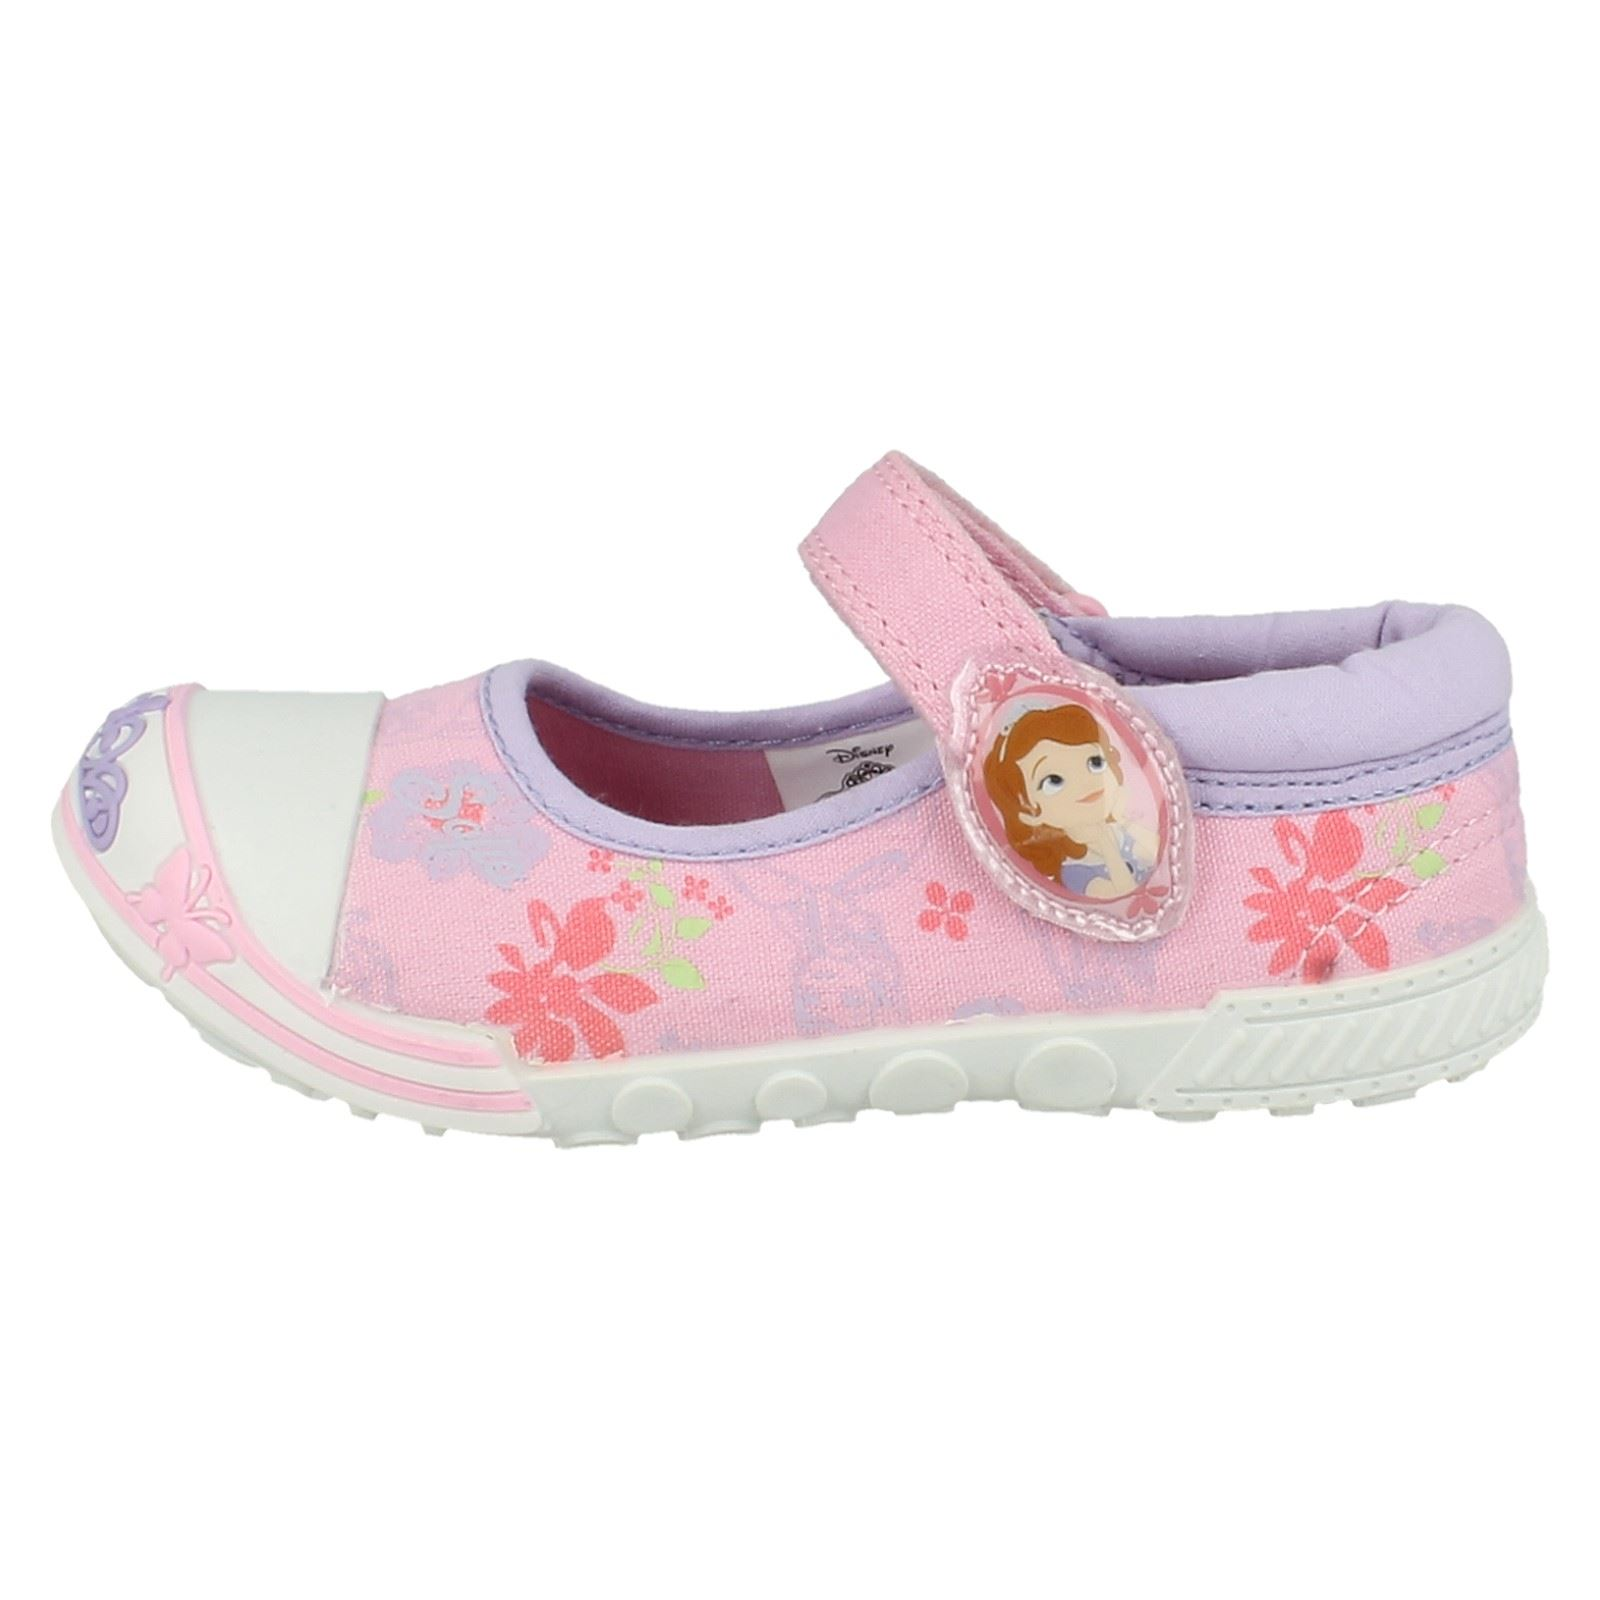 Girls Disneys Canvas Shoes Style - Sophia Dreams Bumper Canvas